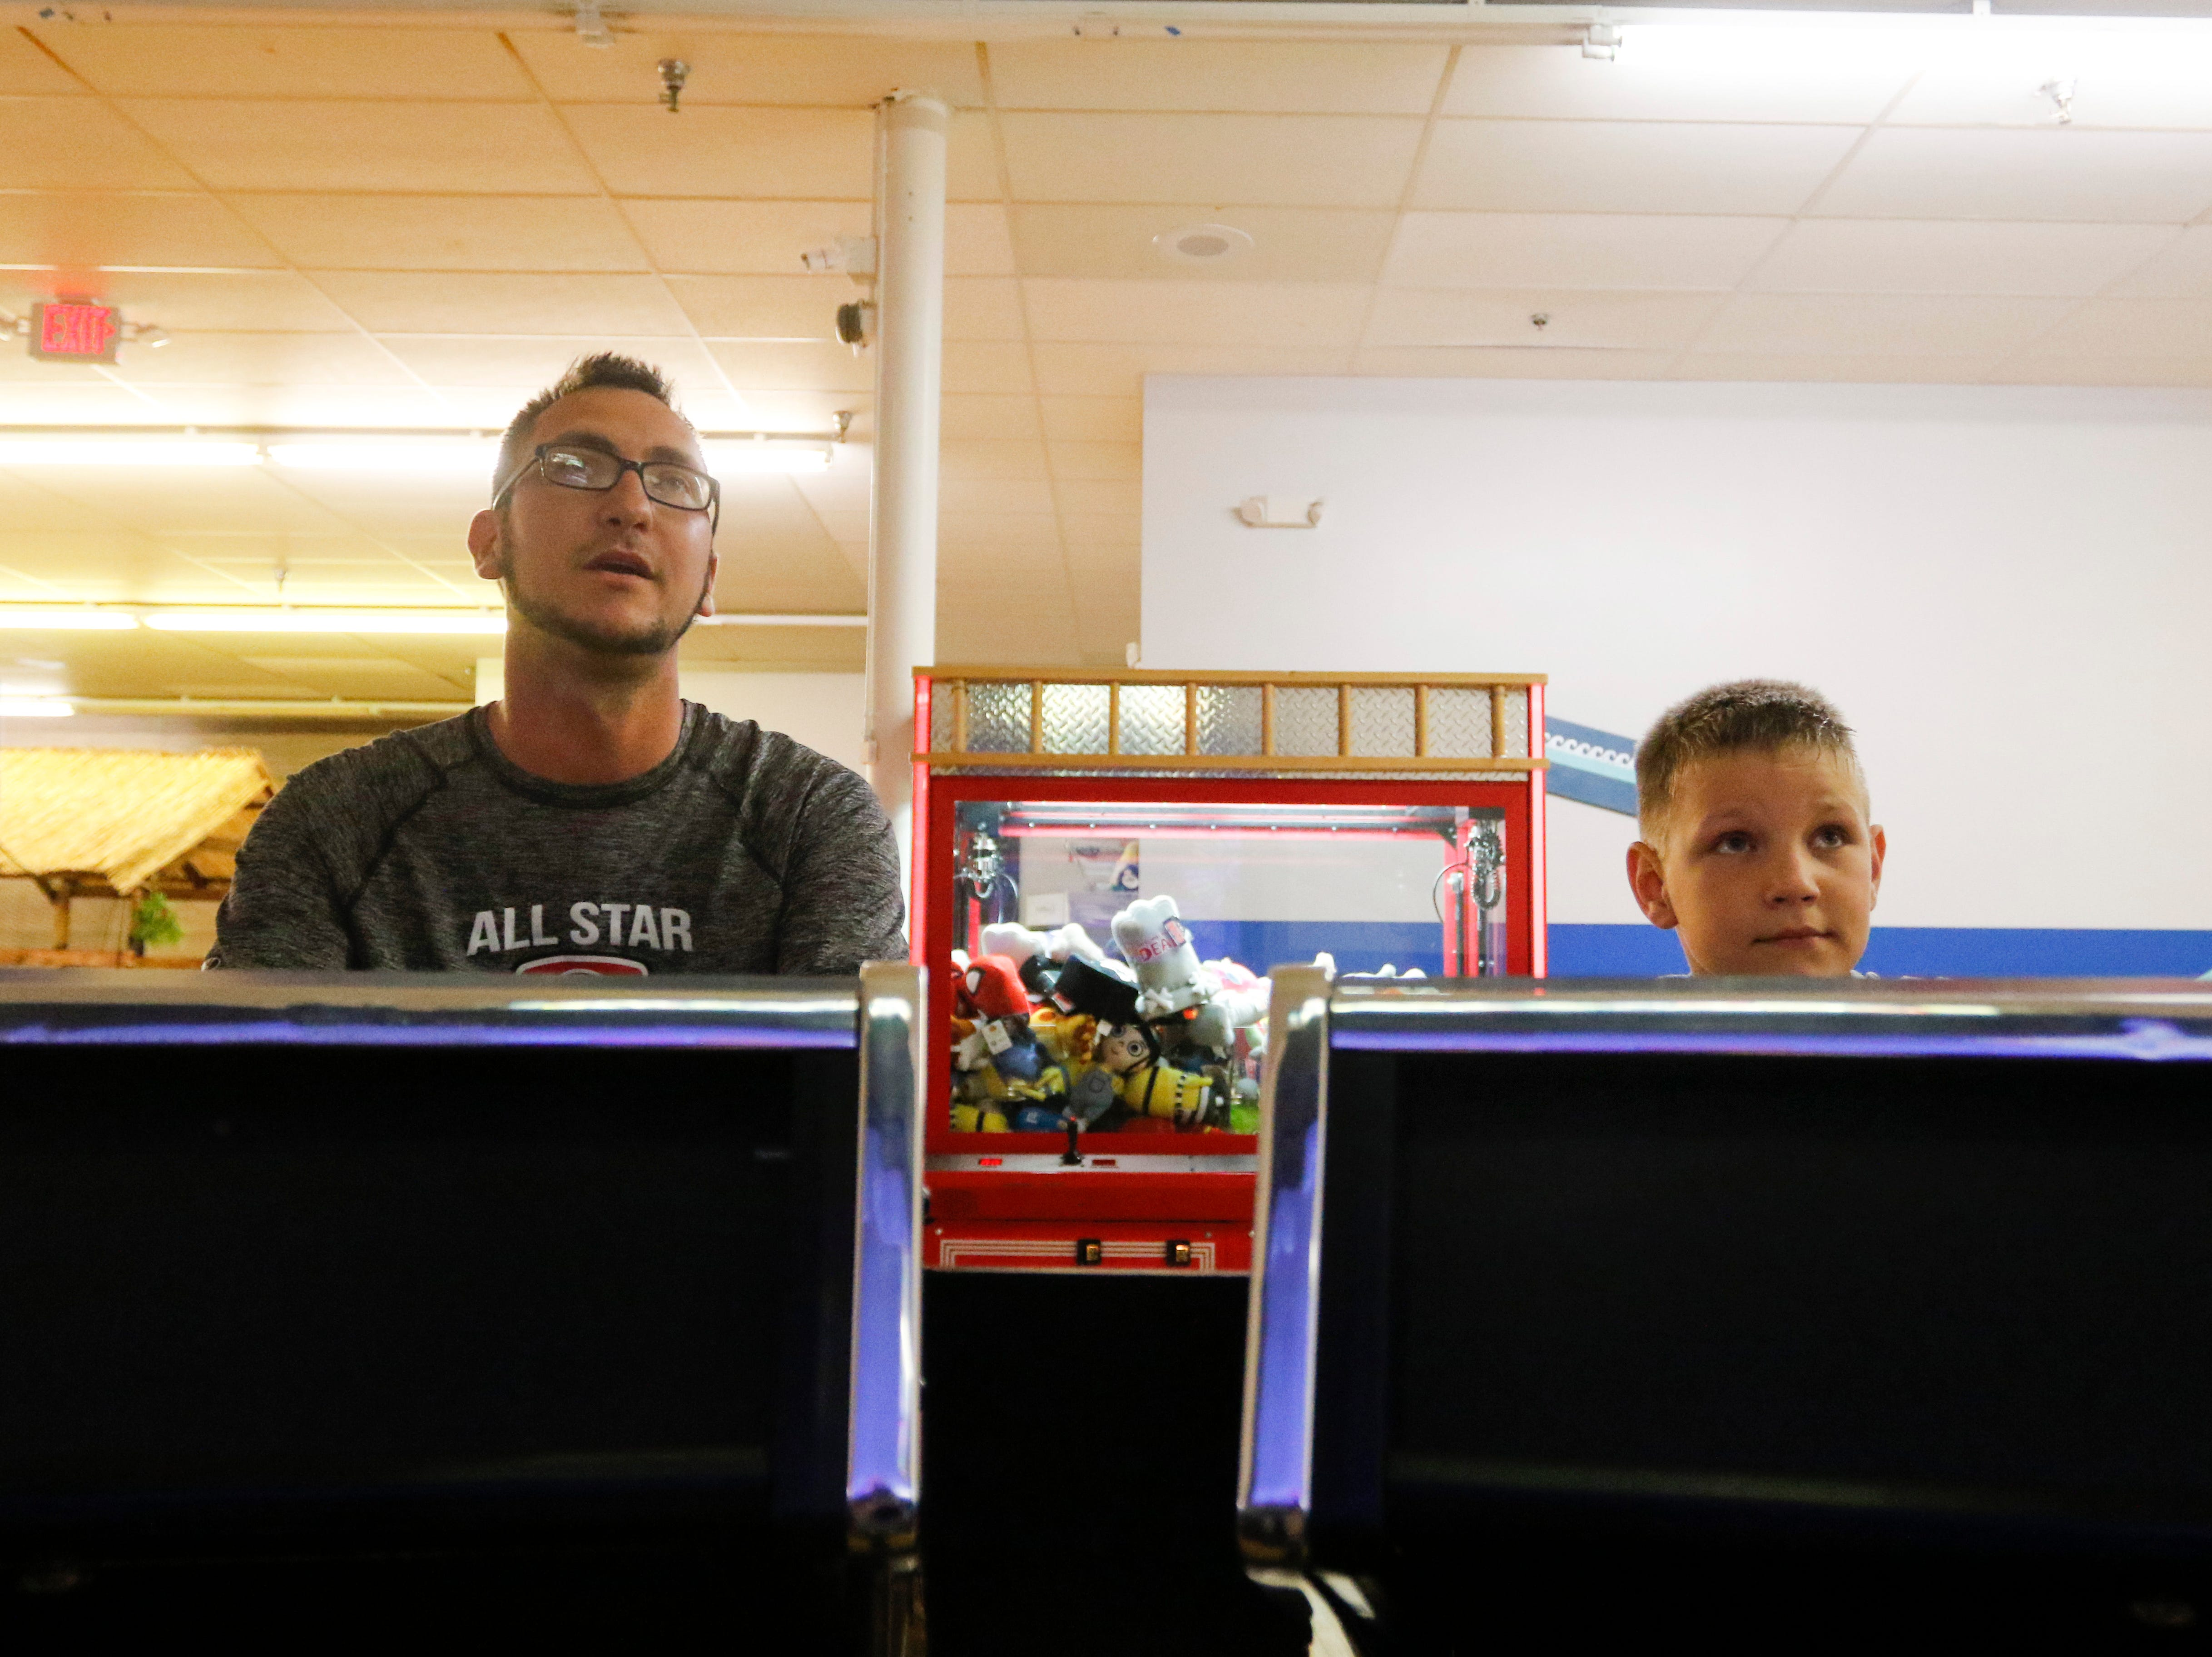 Chris Matijevic and his son Layton Kramer, 8, play a trivia game at Hub City Adventure Wednesday, July 18, 2018.